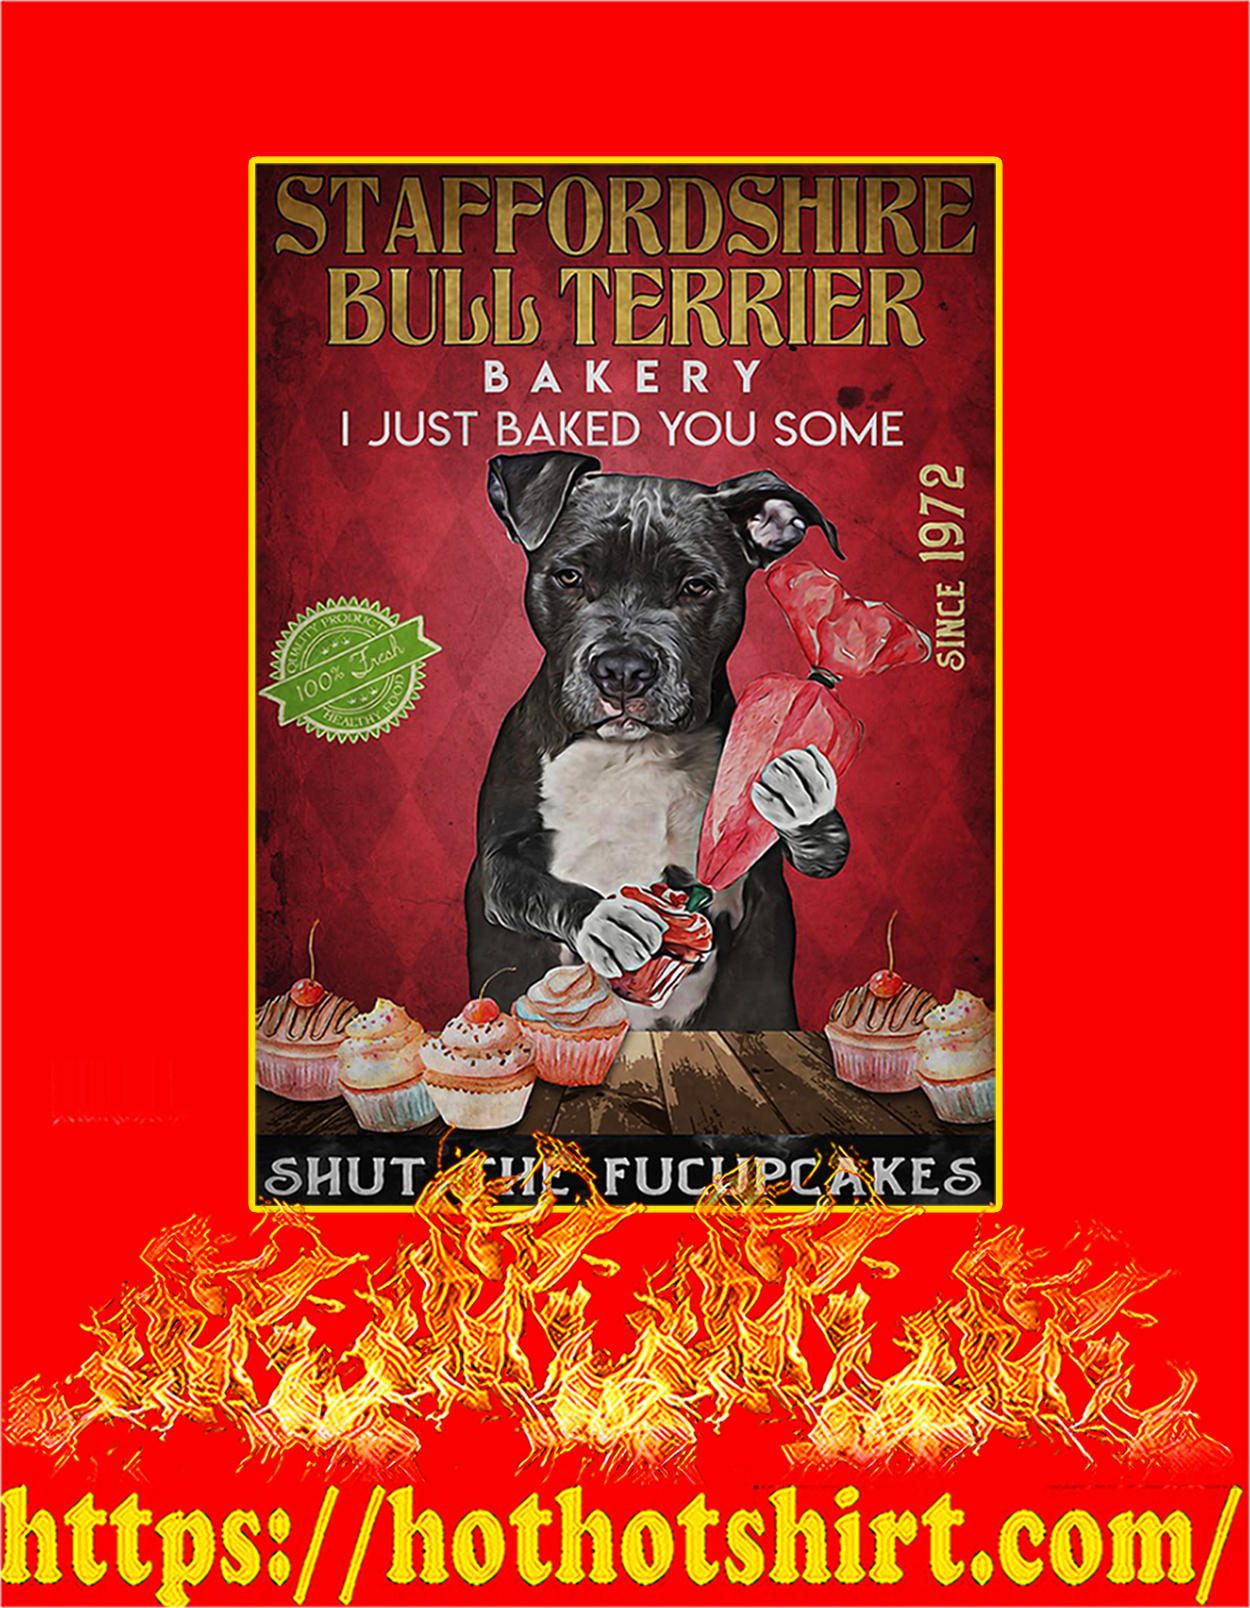 Staffordshire bull terrier bakery shut the fucupcakes poster - A3